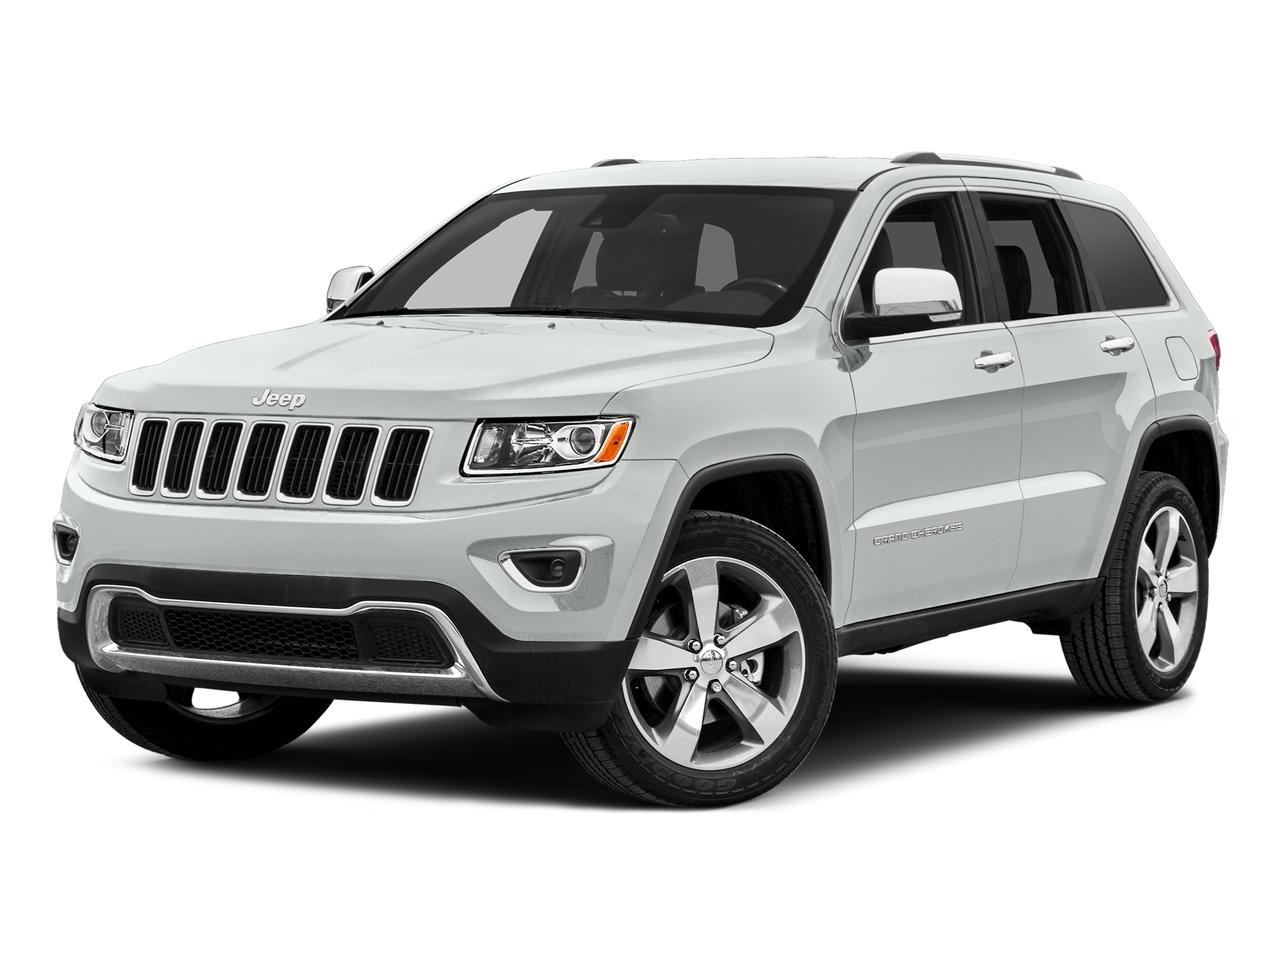 2015 Jeep Grand Cherokee Vehicle Photo in Bowie, MD 20716